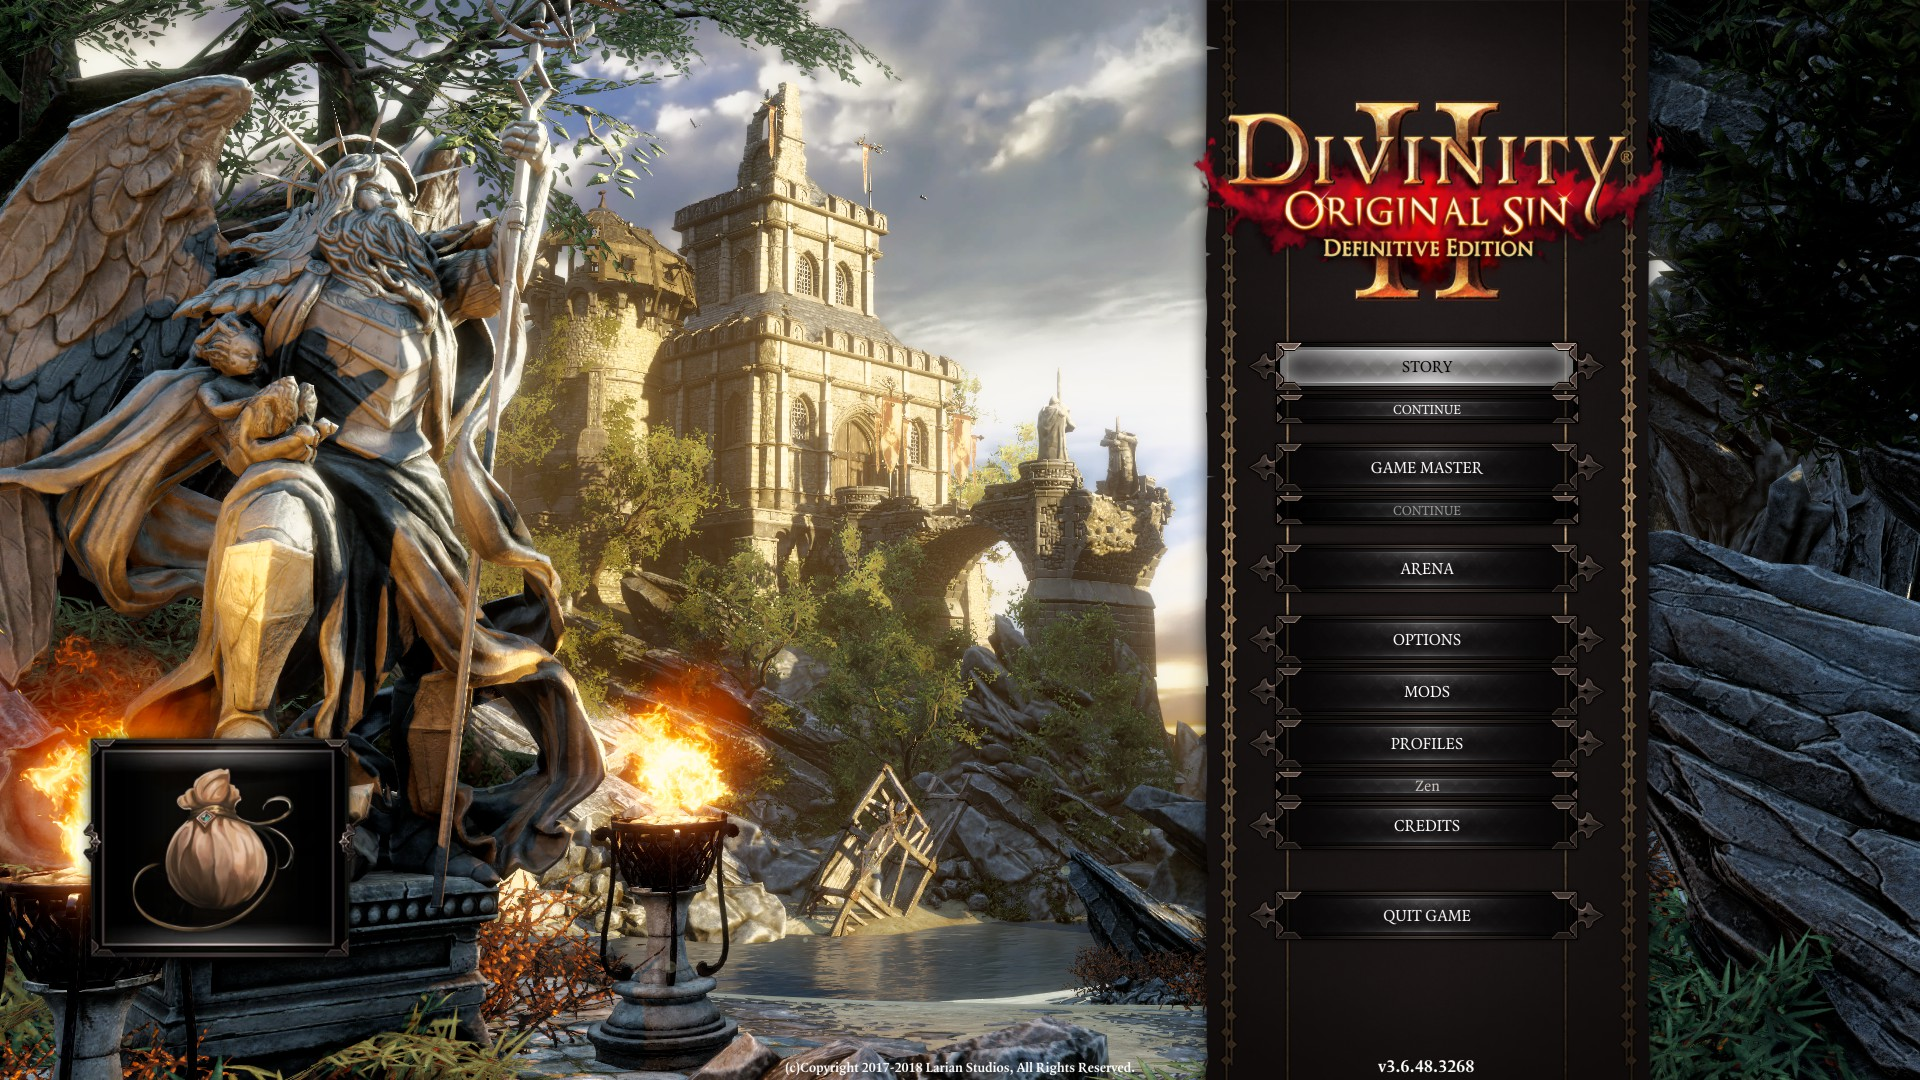 29+ Divinity Original Sin 2 Wallpaper Hd Pictures